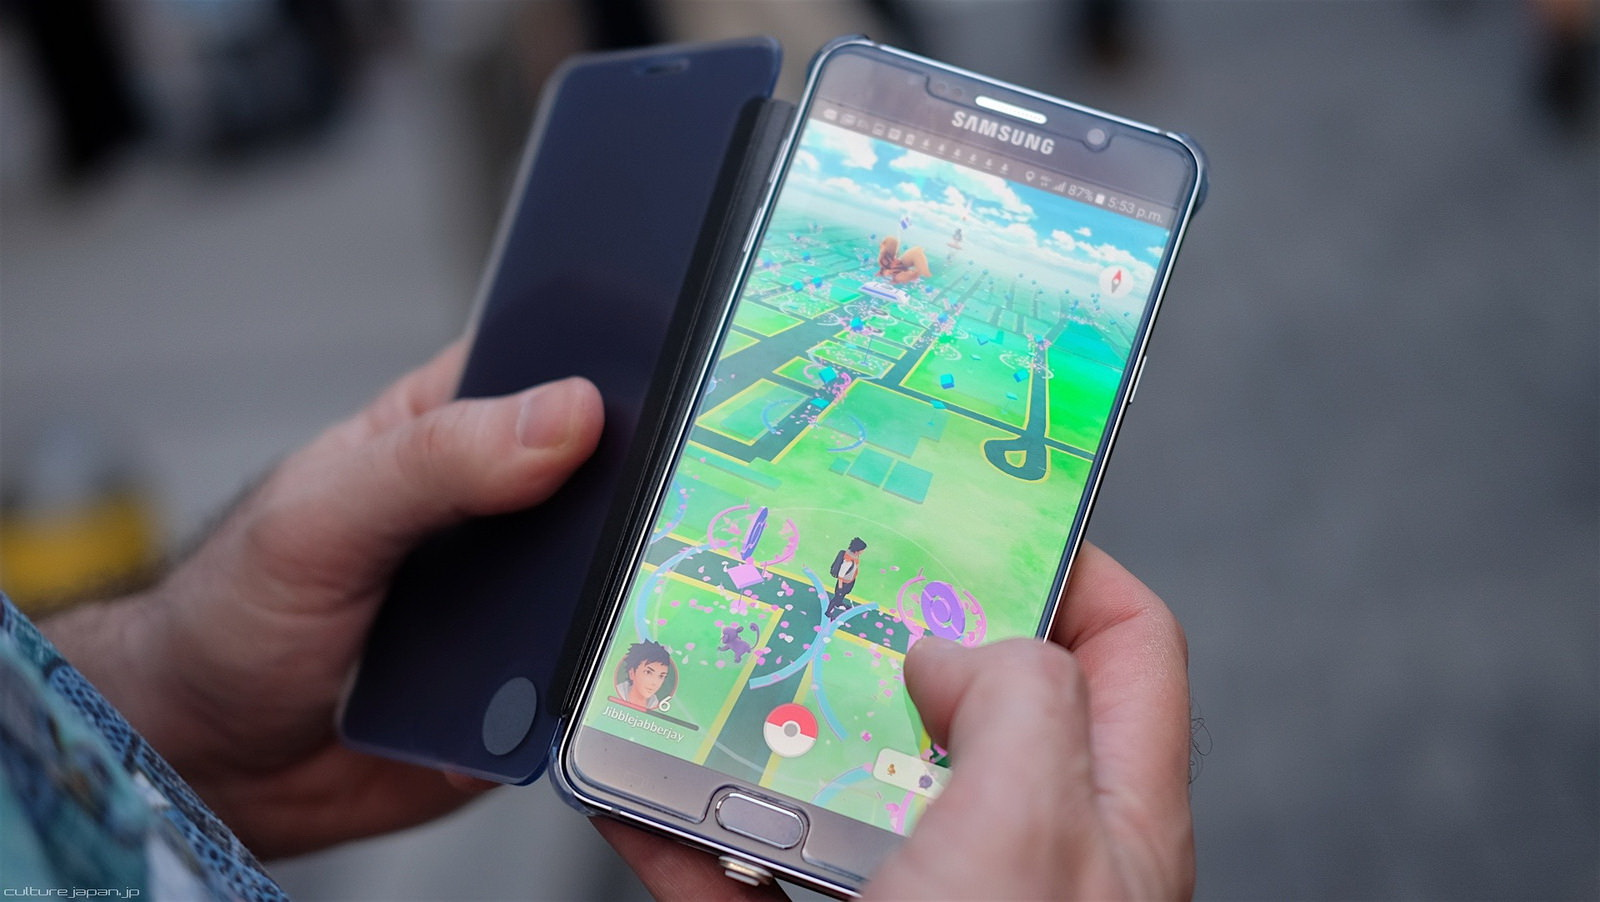 Pokémon GO: To regulate or not to regulate?